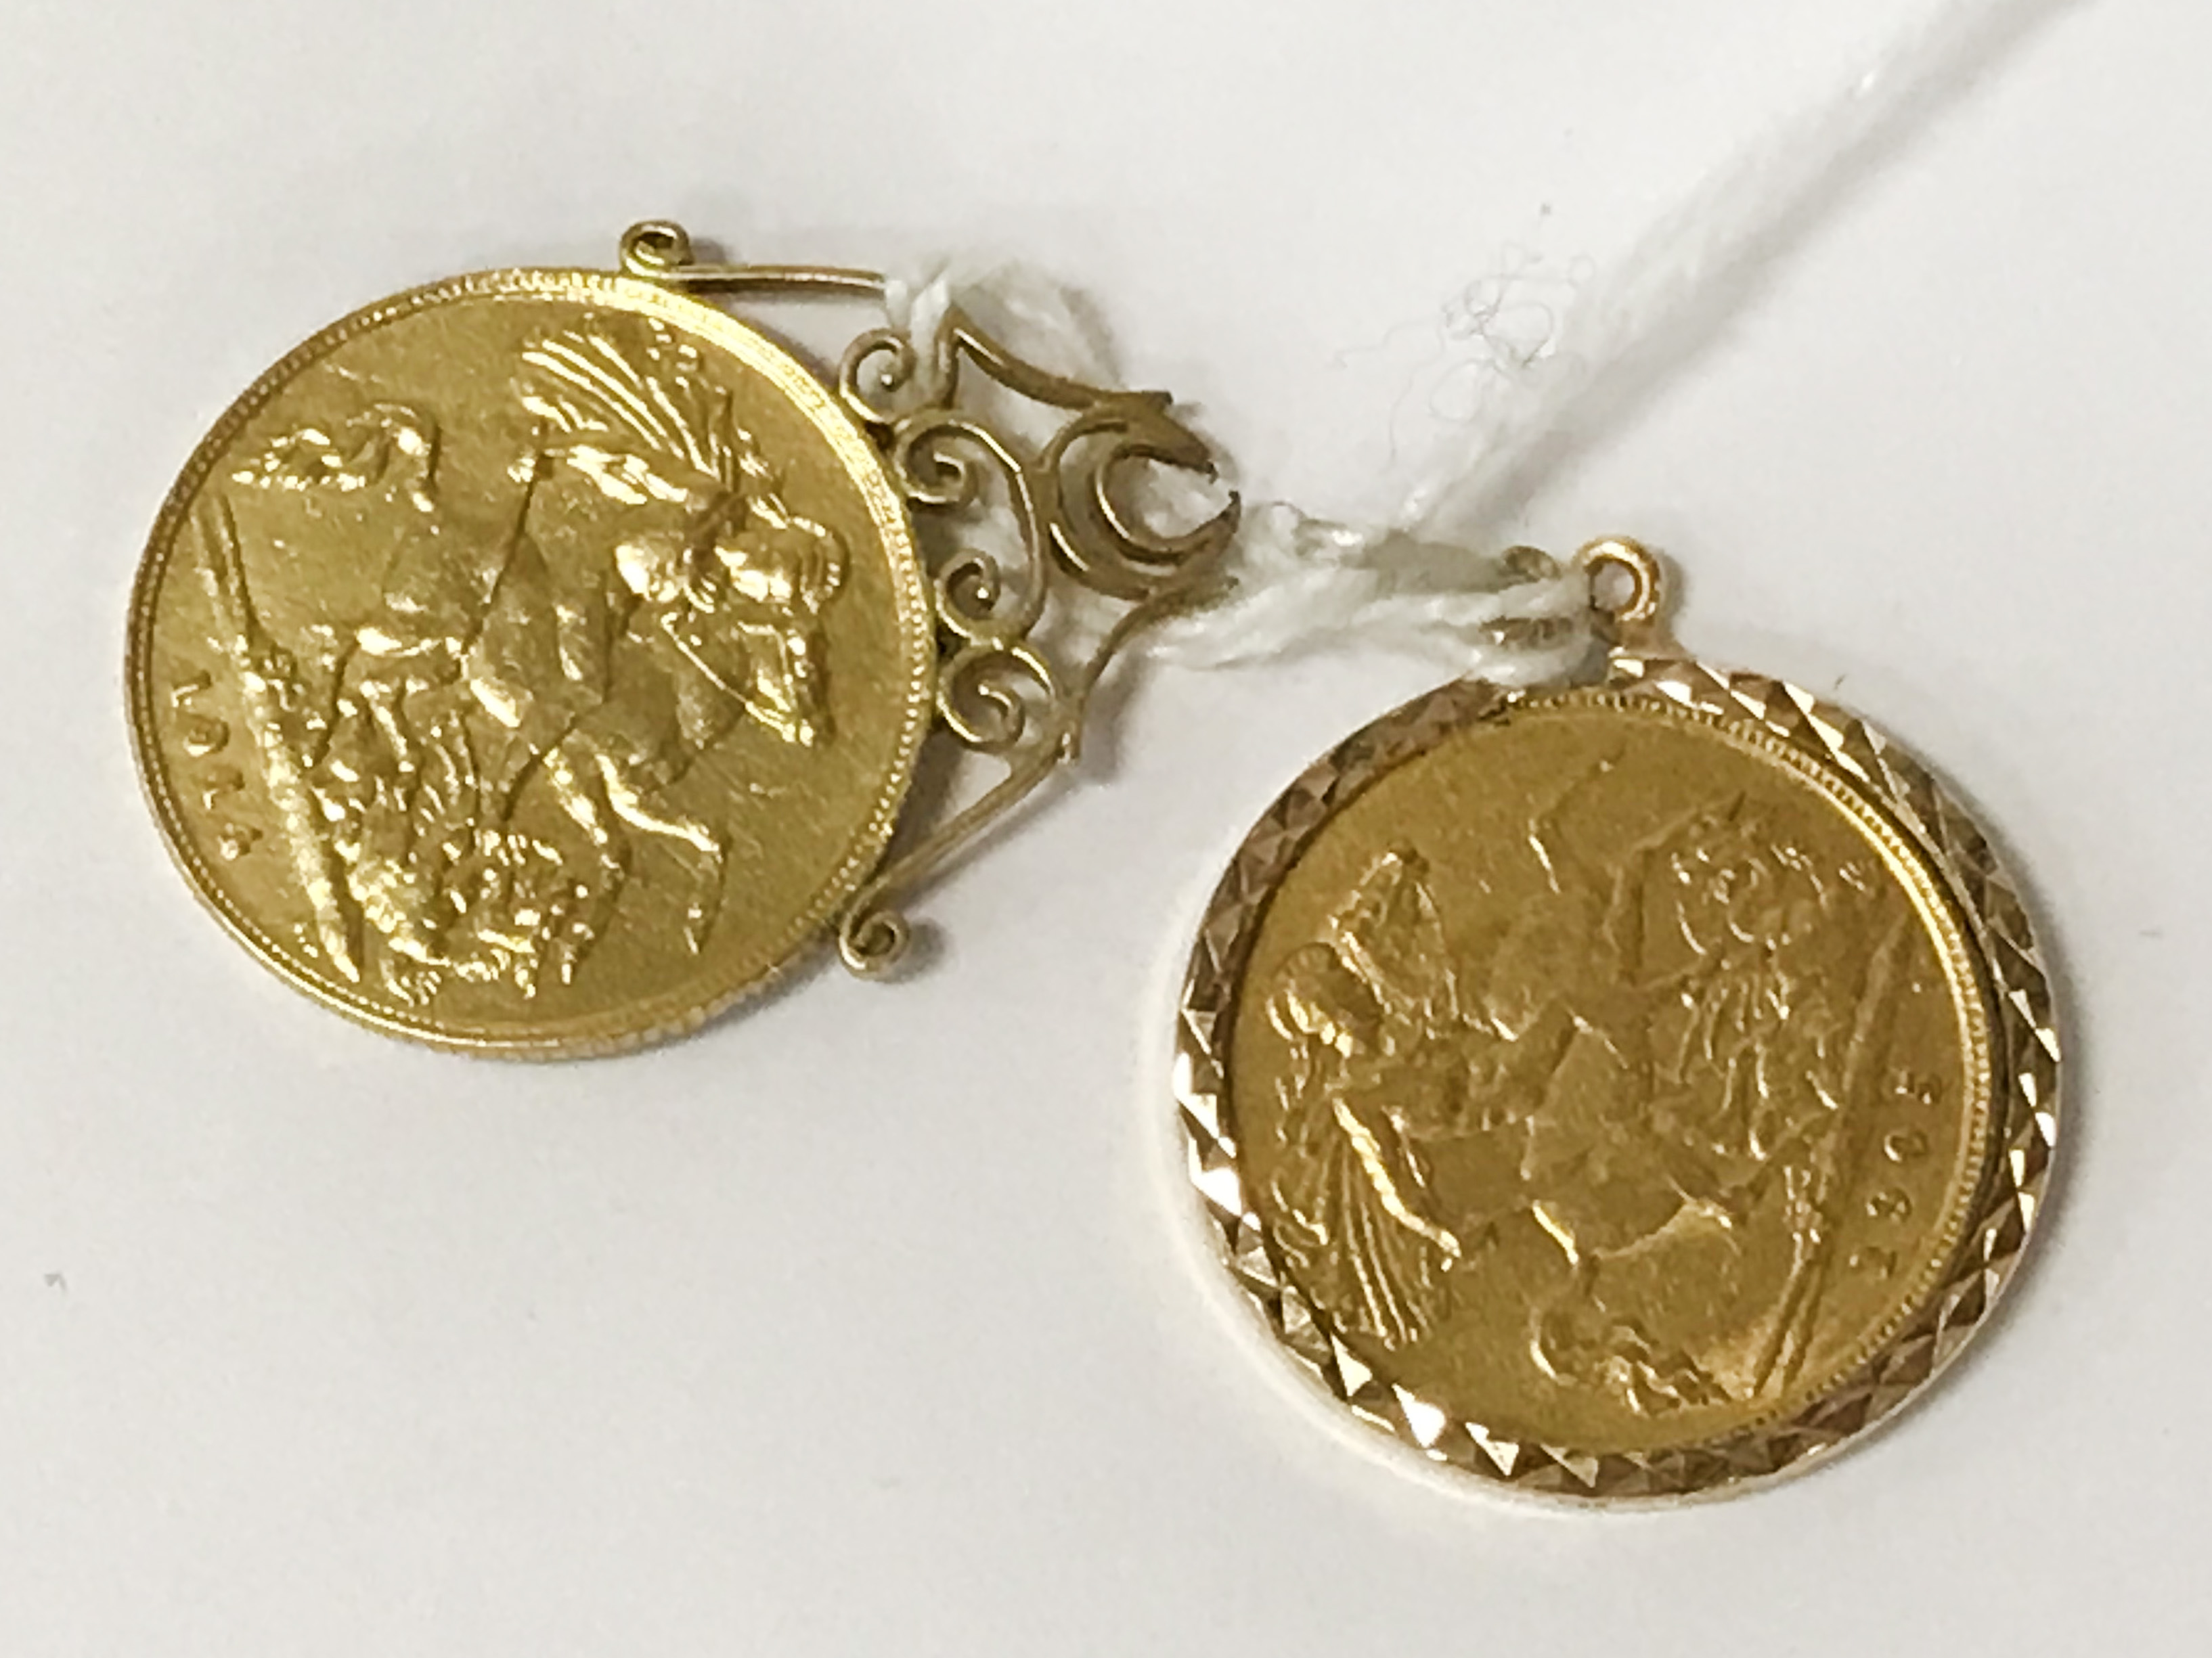 TWO HALF SOVEREIGNS - 1905 & 1914 - 1 IS LOOSE MOUNTED - Image 2 of 2